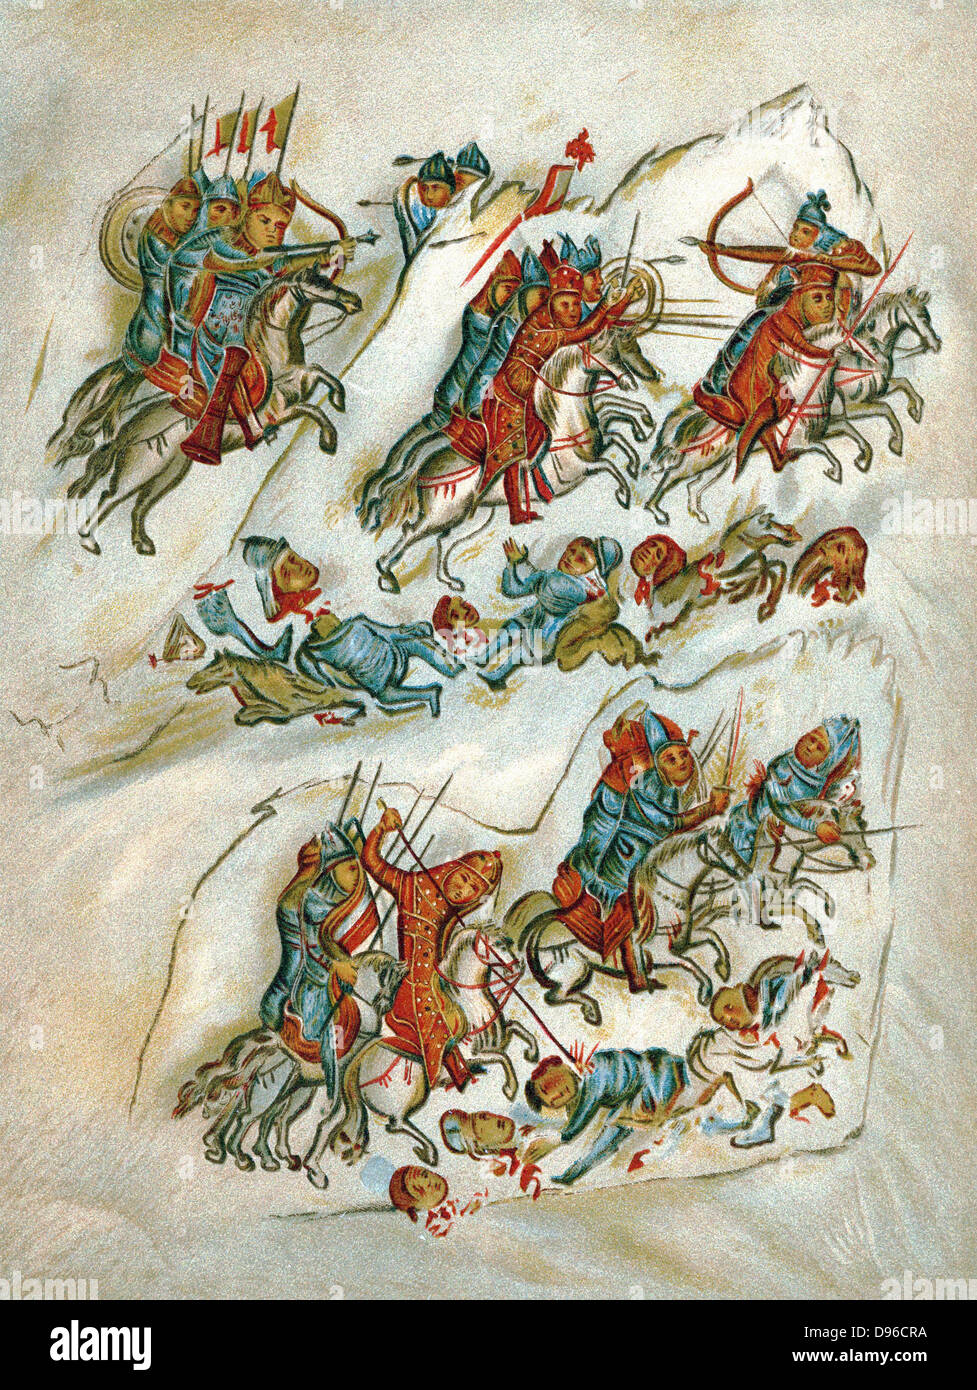 Russians routing Bulgarians in cavalry skirmish. Chromolithograph from 10th century Sclavonian manuscript in the - Stock Image